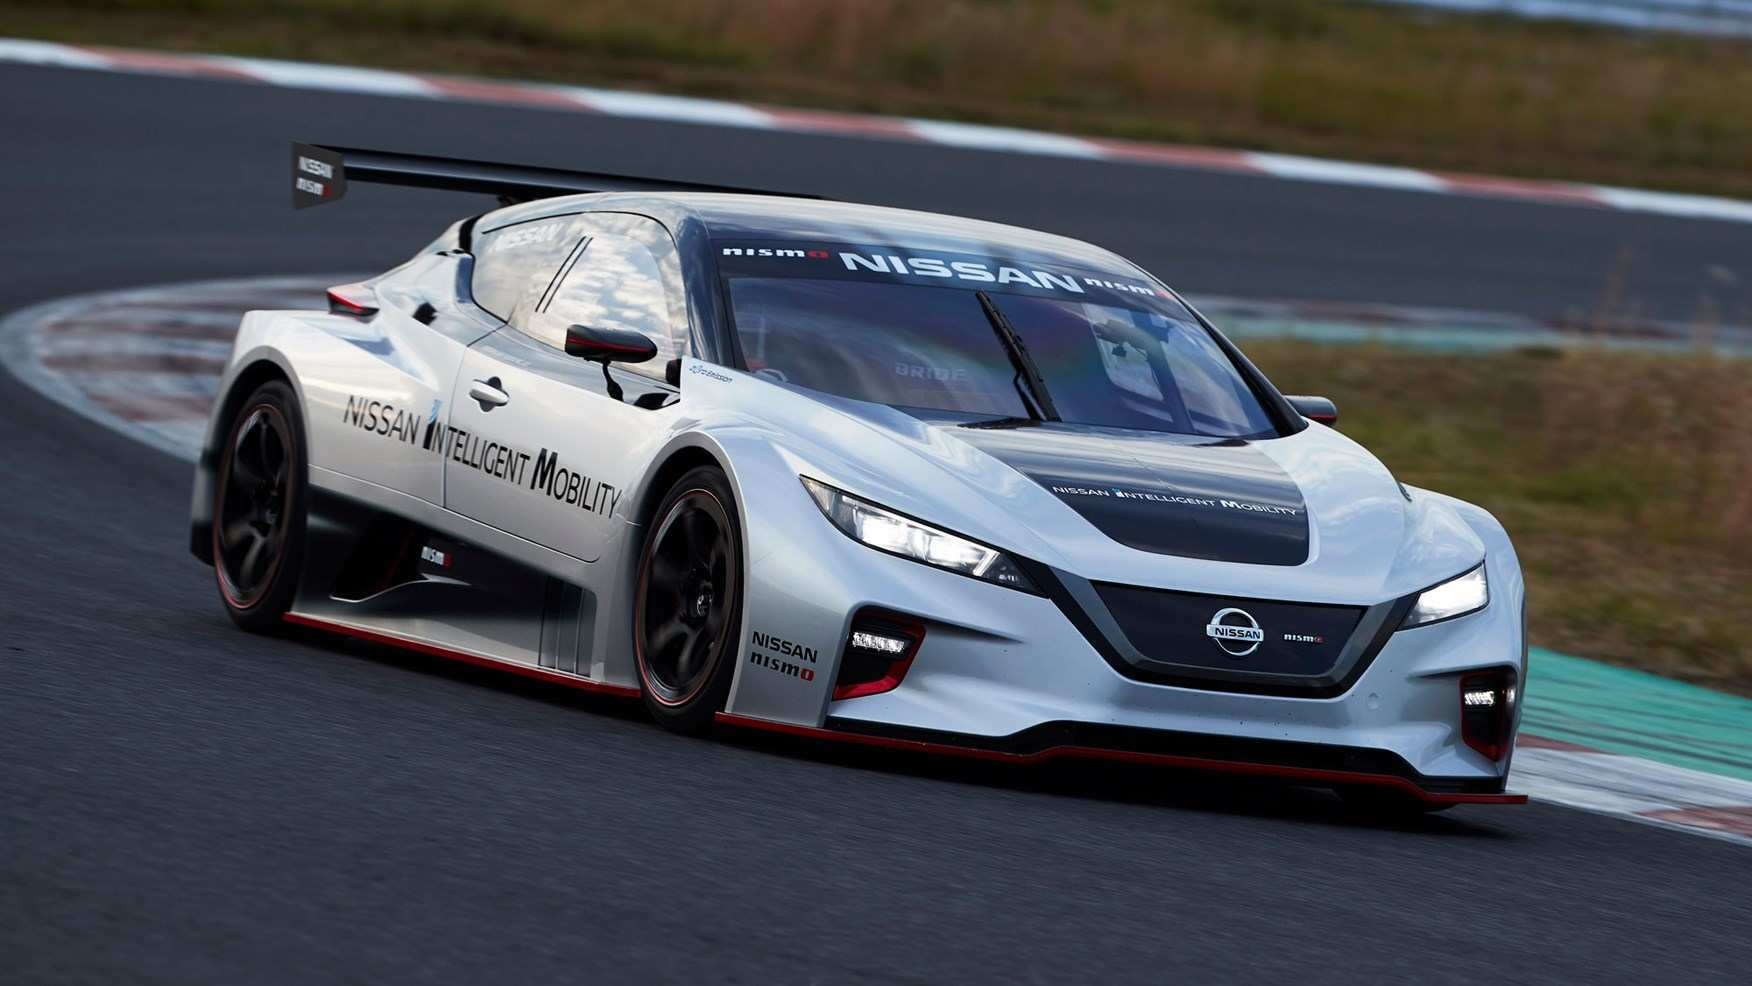 76 Concept of Nissan Leaf Nismo 2019 Performance And New Engine Performance and New Engine by Nissan Leaf Nismo 2019 Performance And New Engine